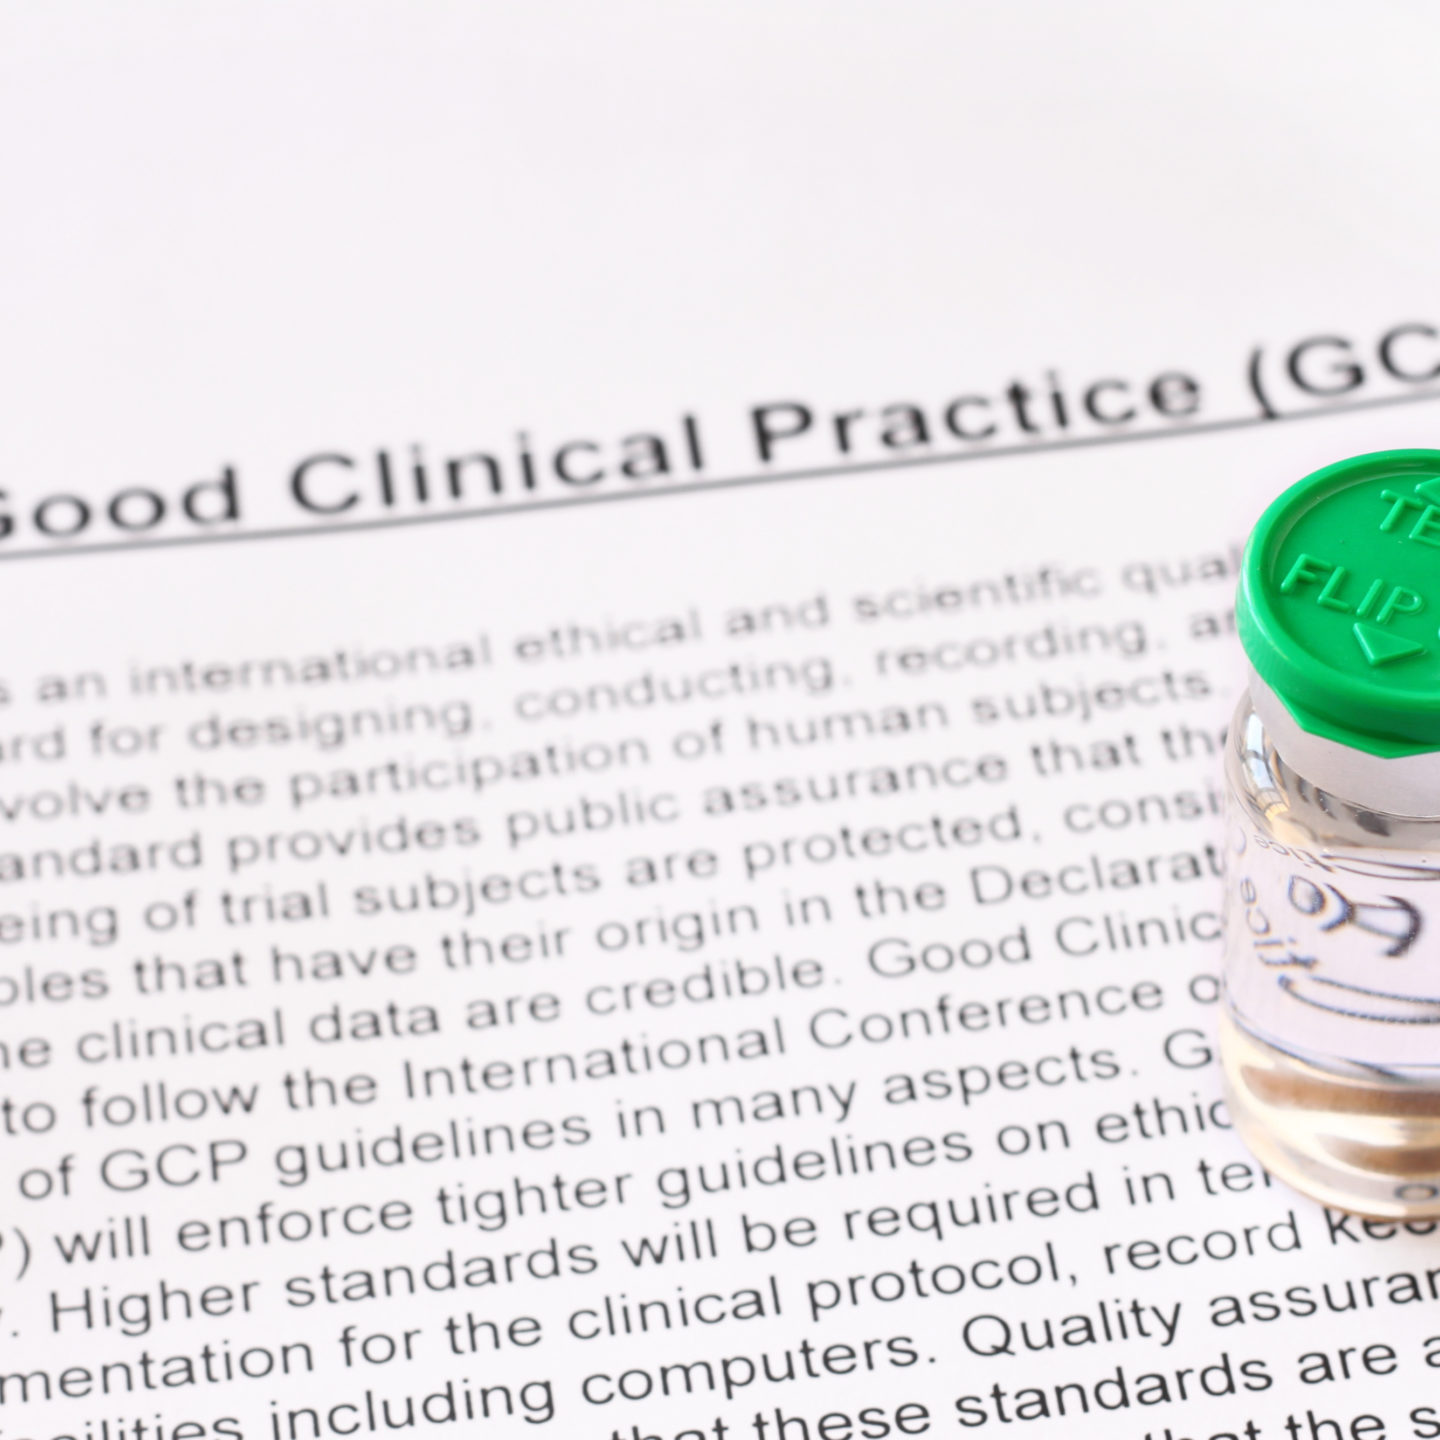 GCP practice document